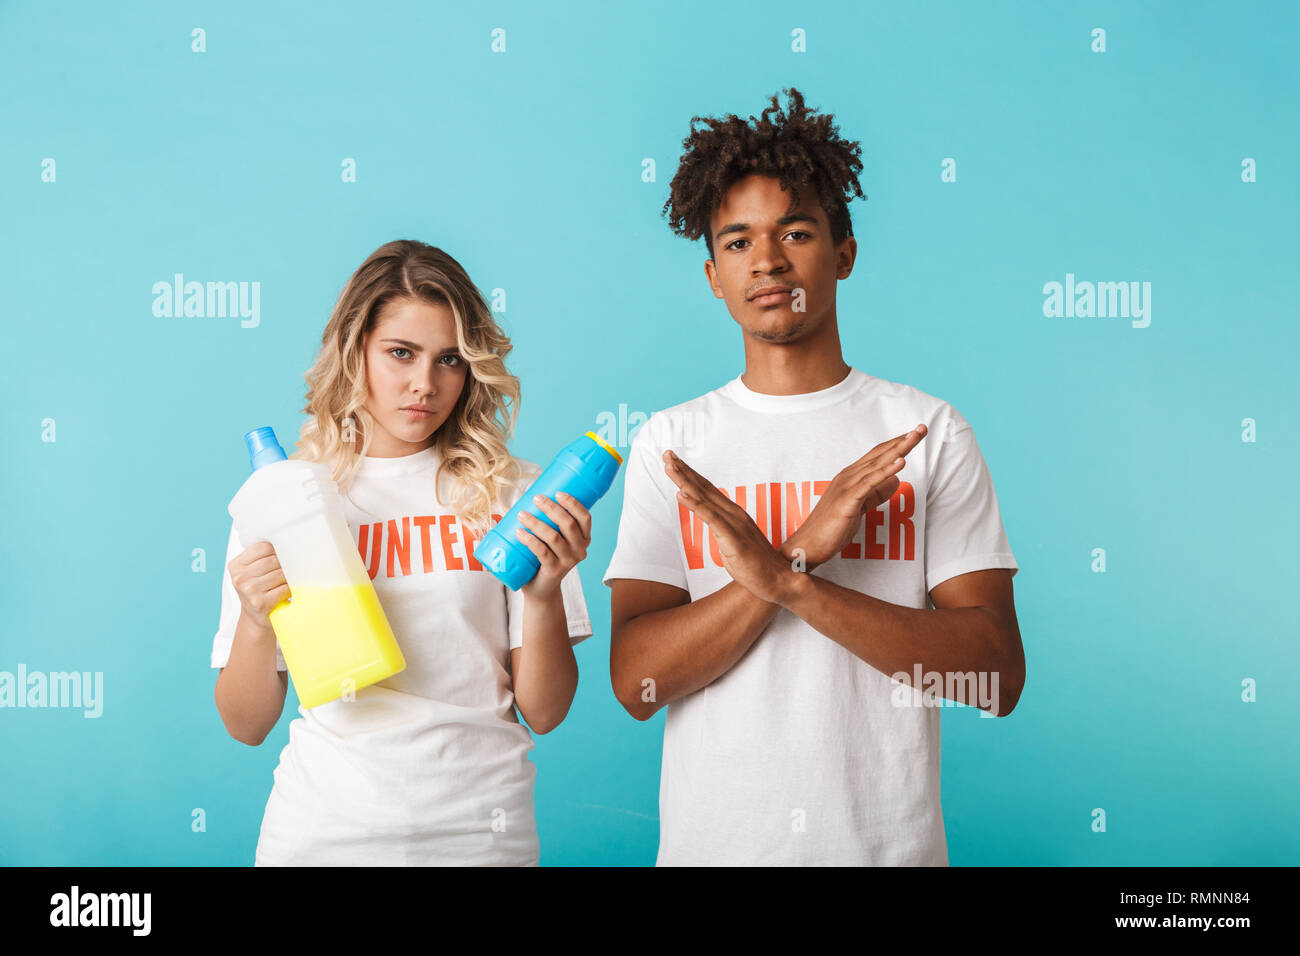 Angry confident multiethnic couple wearing volunteers t-shirt standing isolated over blue background, holding detergents, showing crossed hands gestur - Stock Image